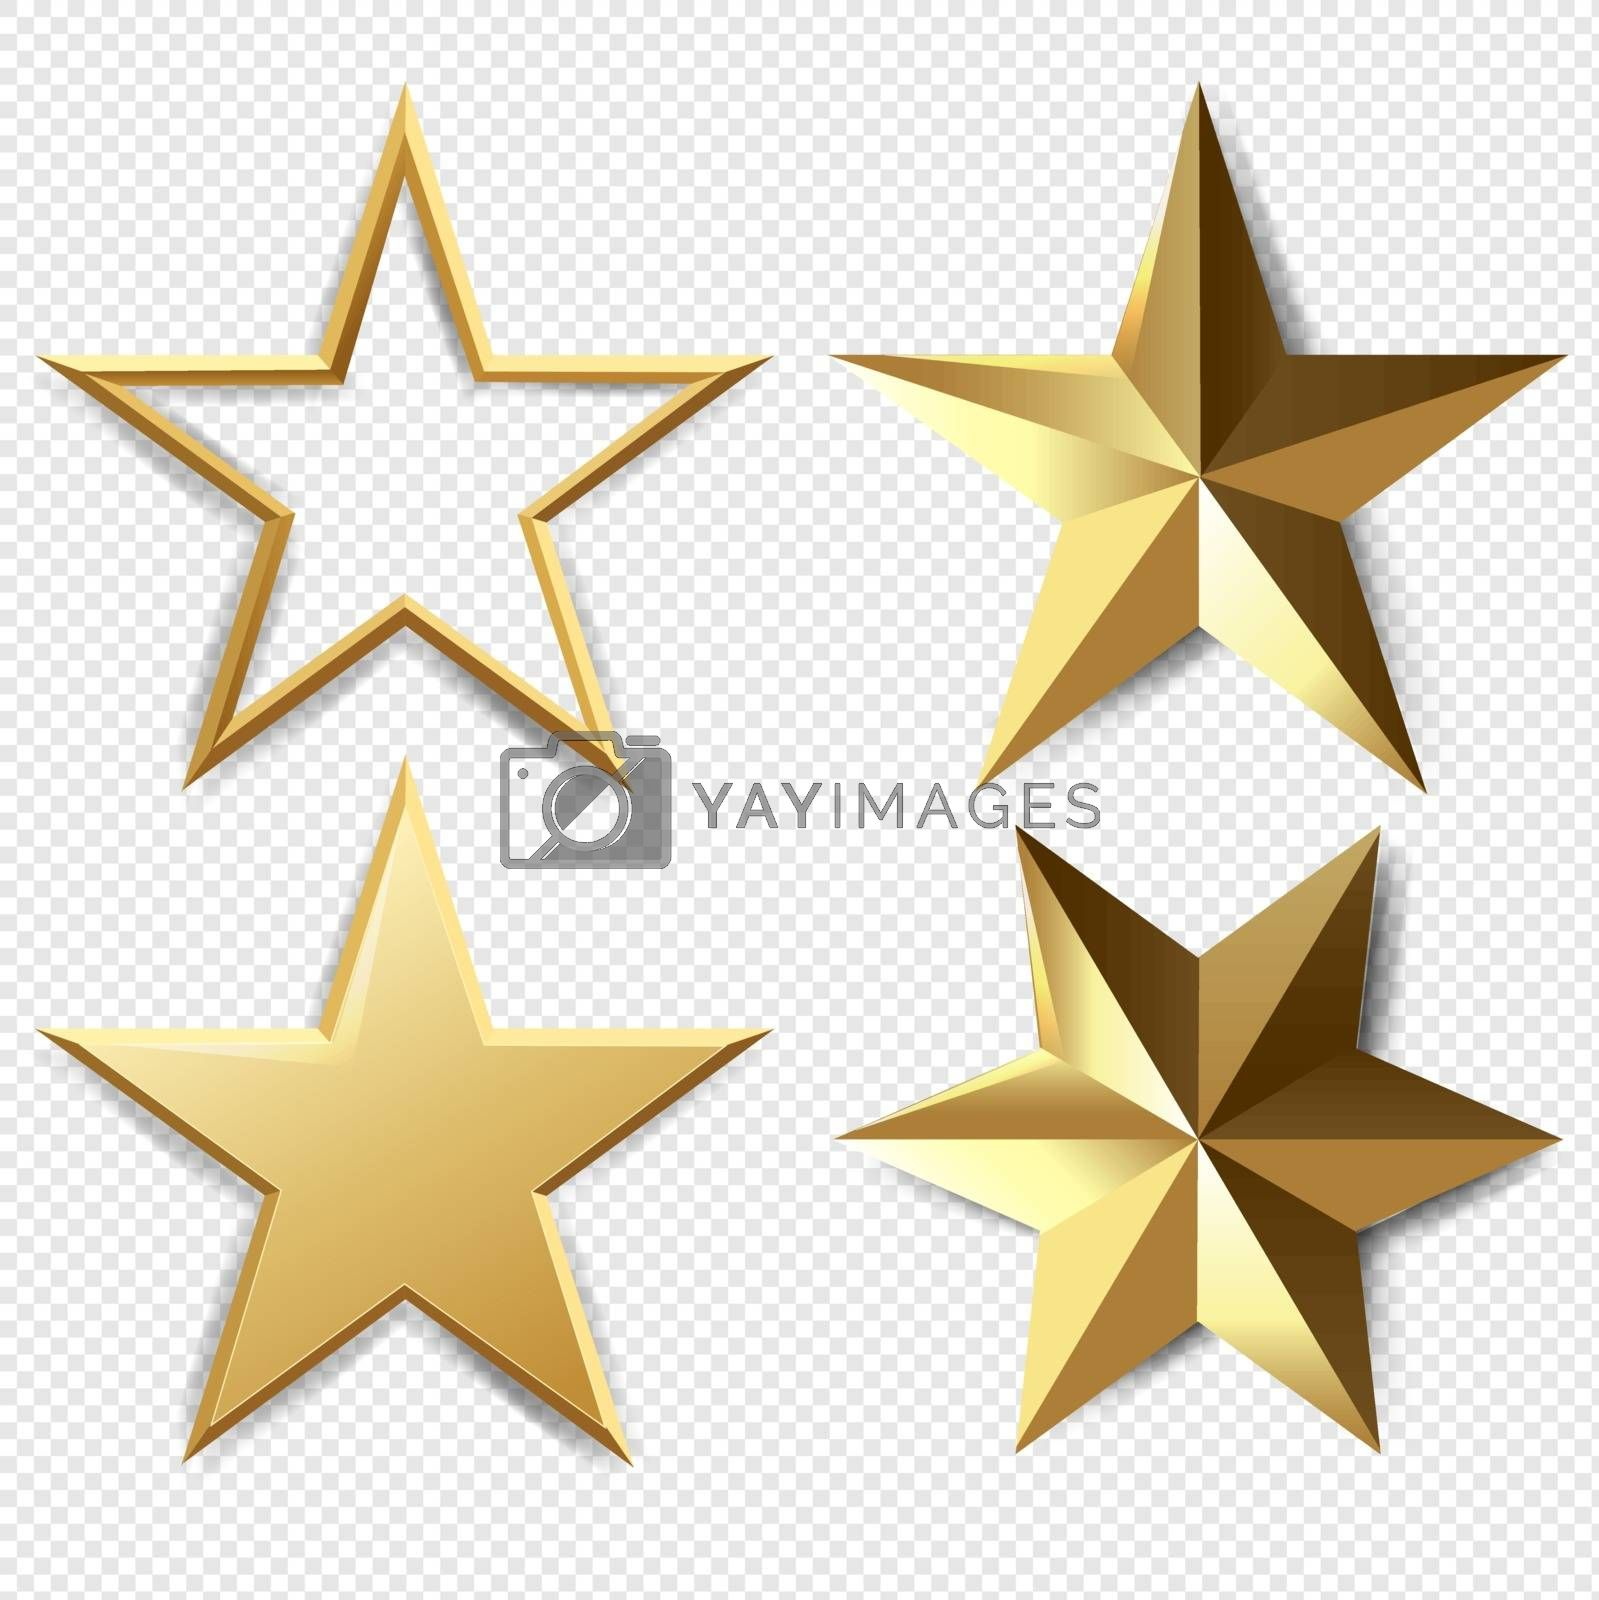 Golden Stars Set Isolated Transparent Background With Gradient Mesh, Vector Illustration